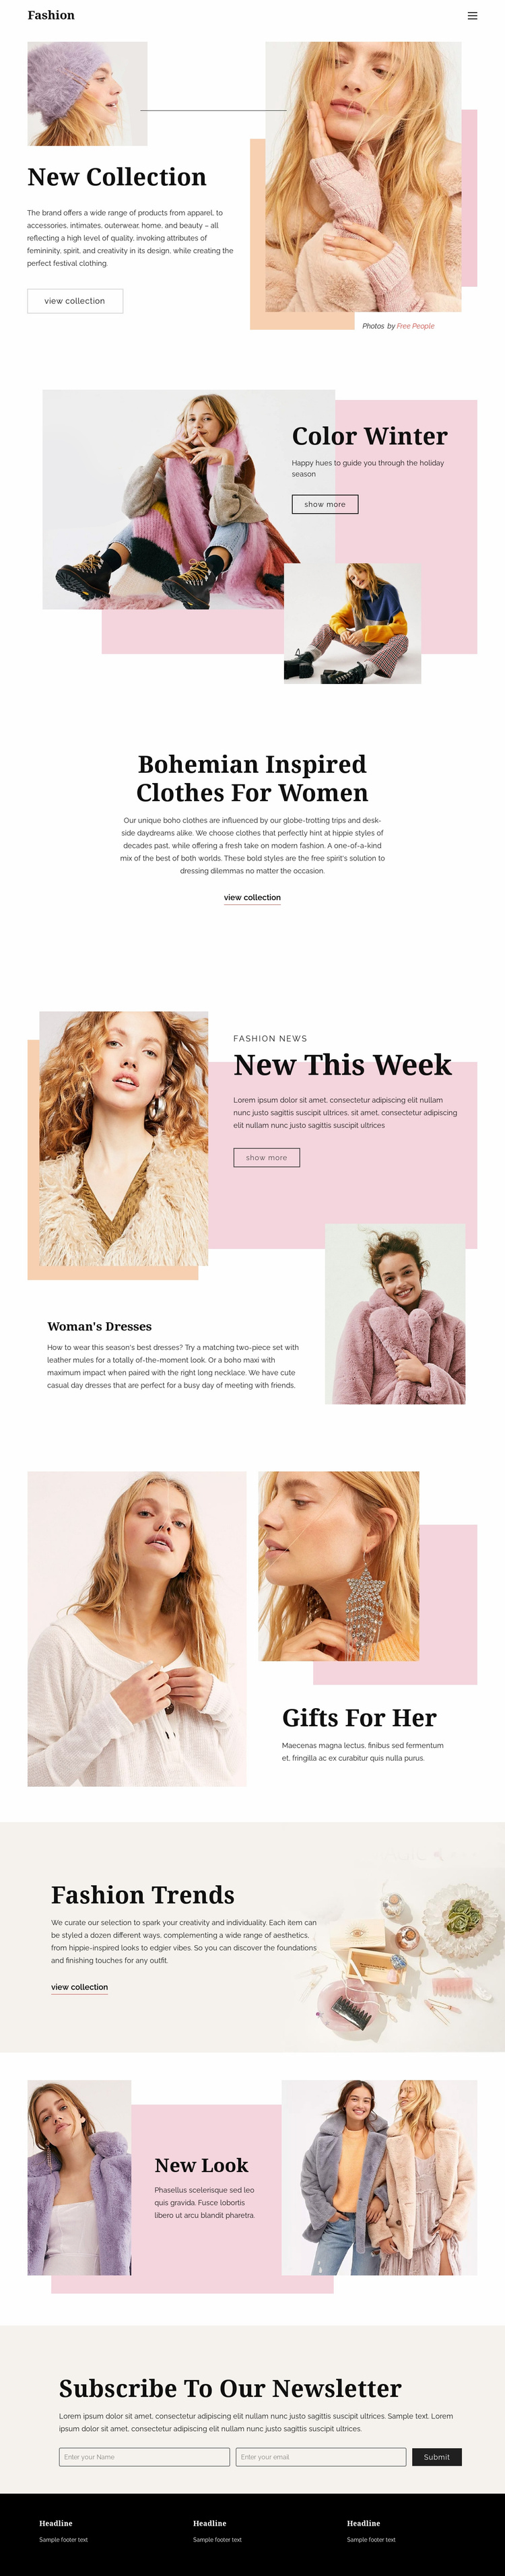 Fashion Page Design Website Template